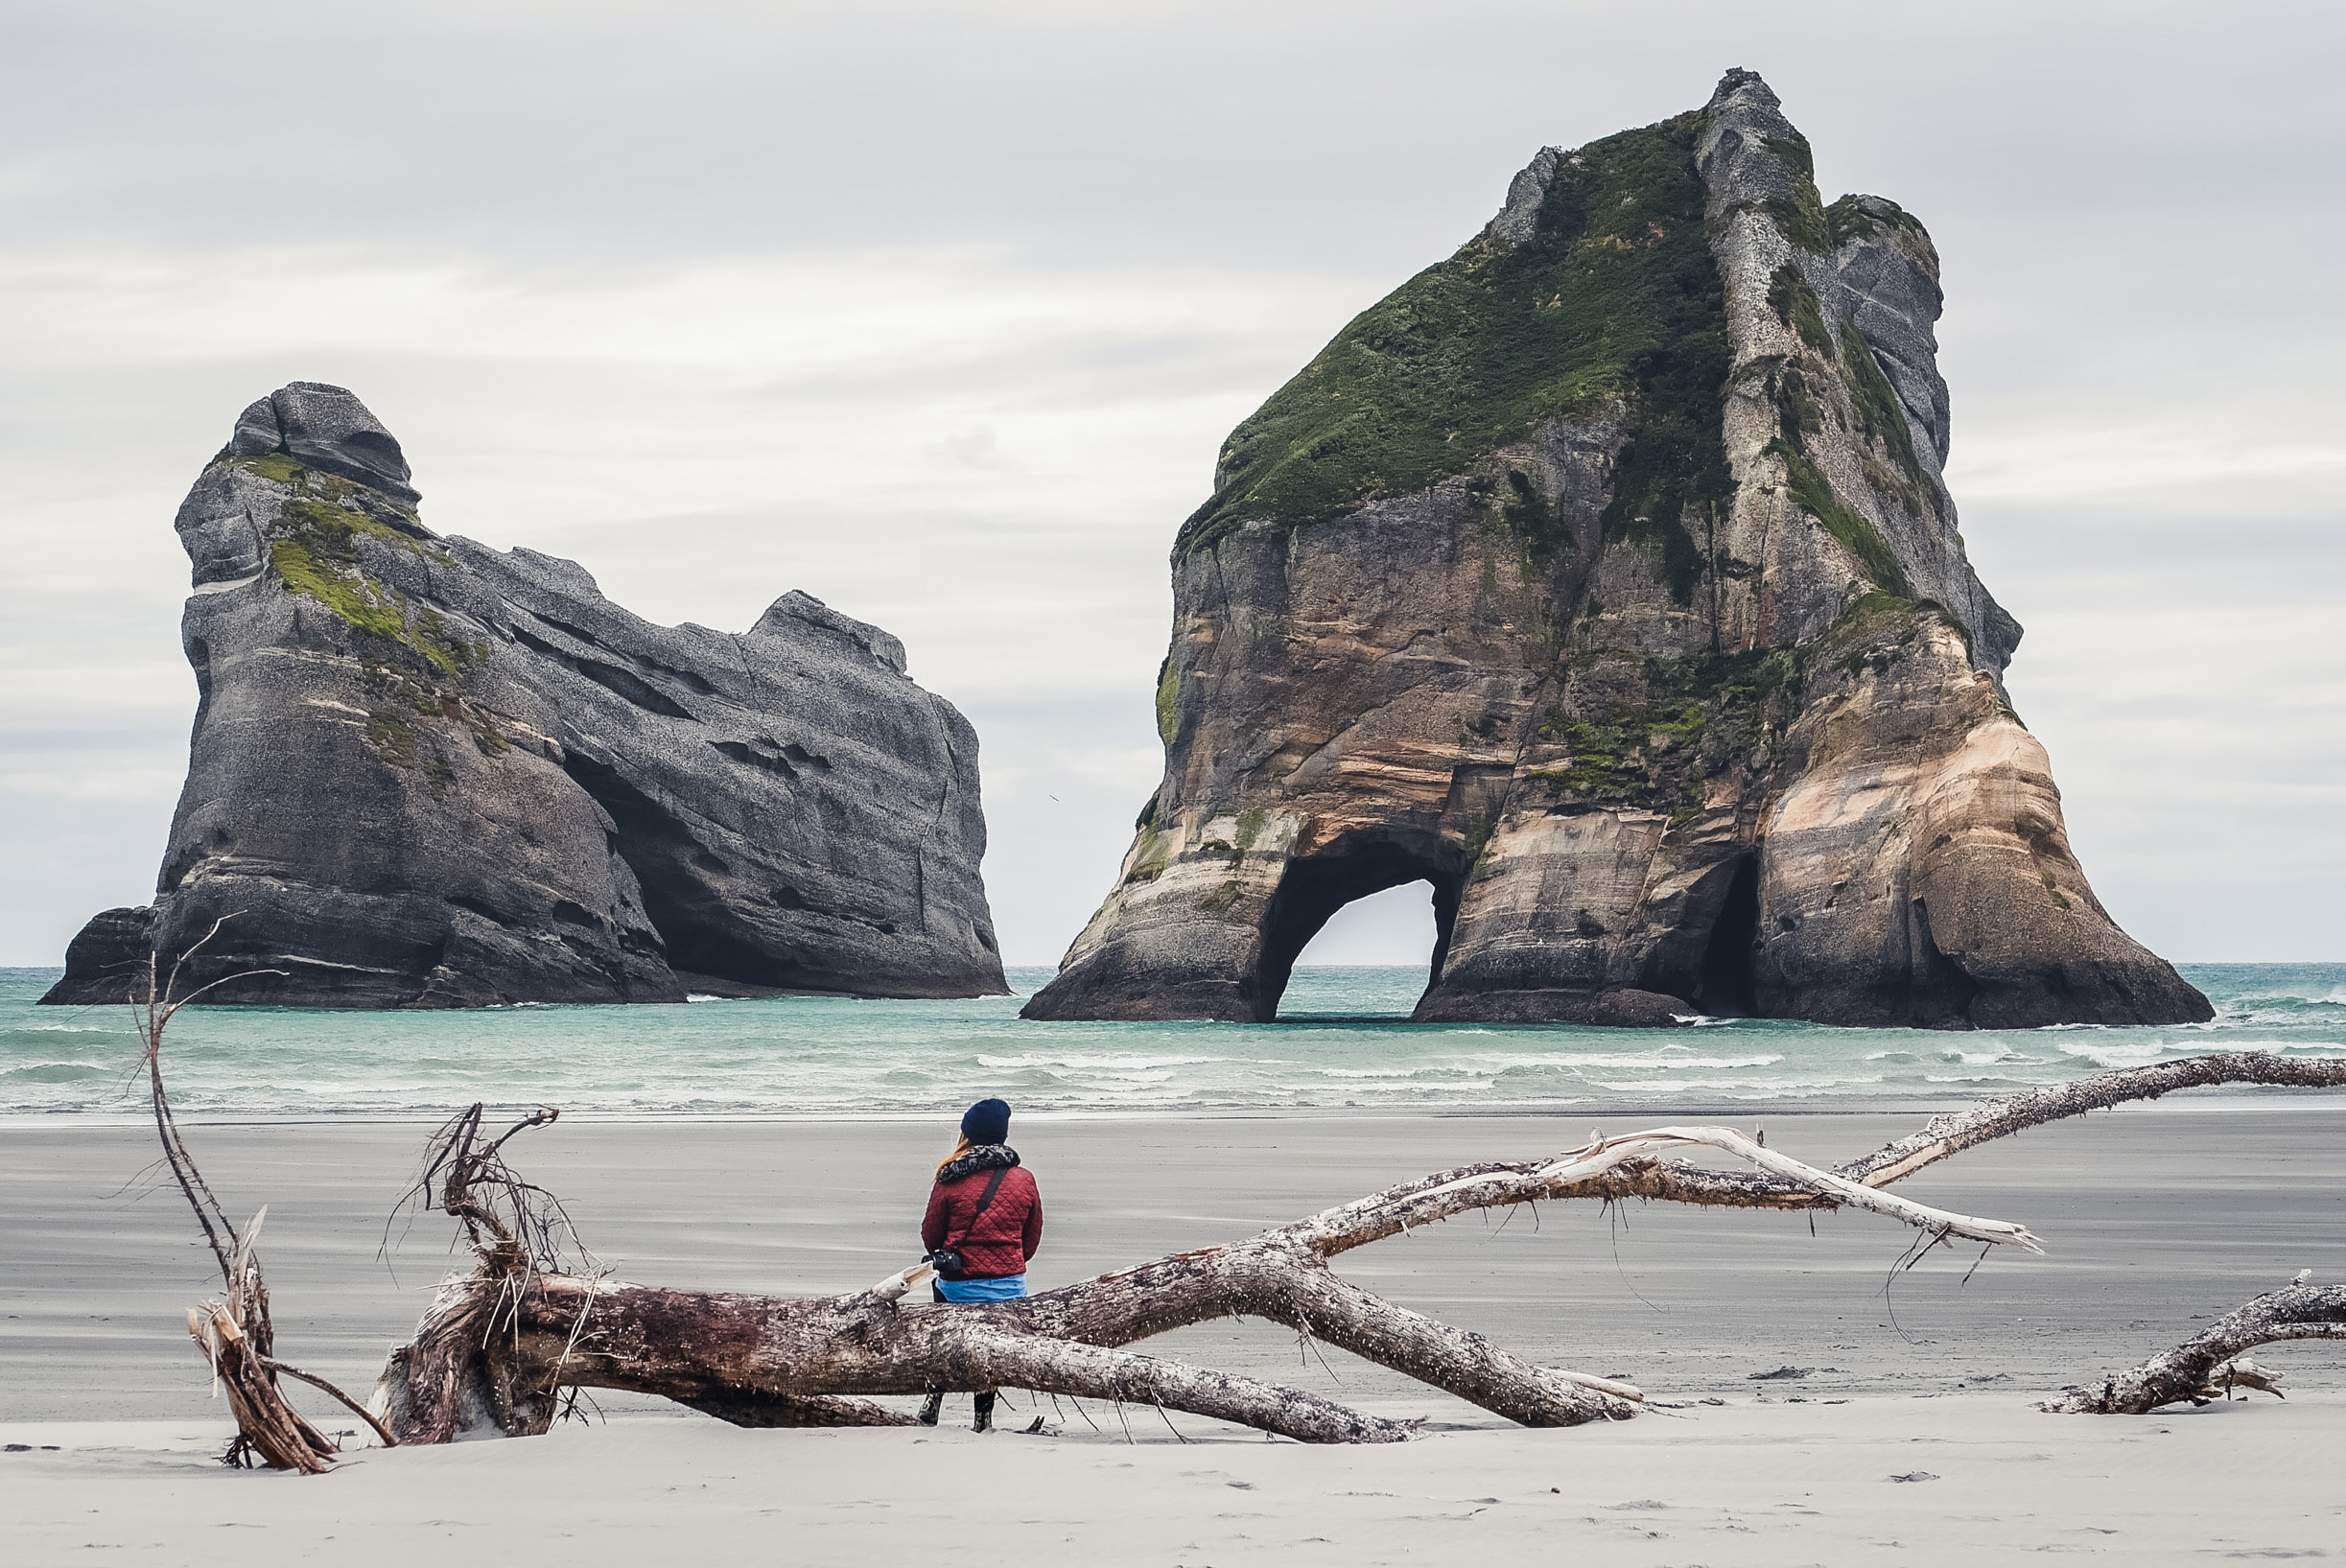 Rock formations in front of a woman sitting on a dead tree at the Wharariki Beach